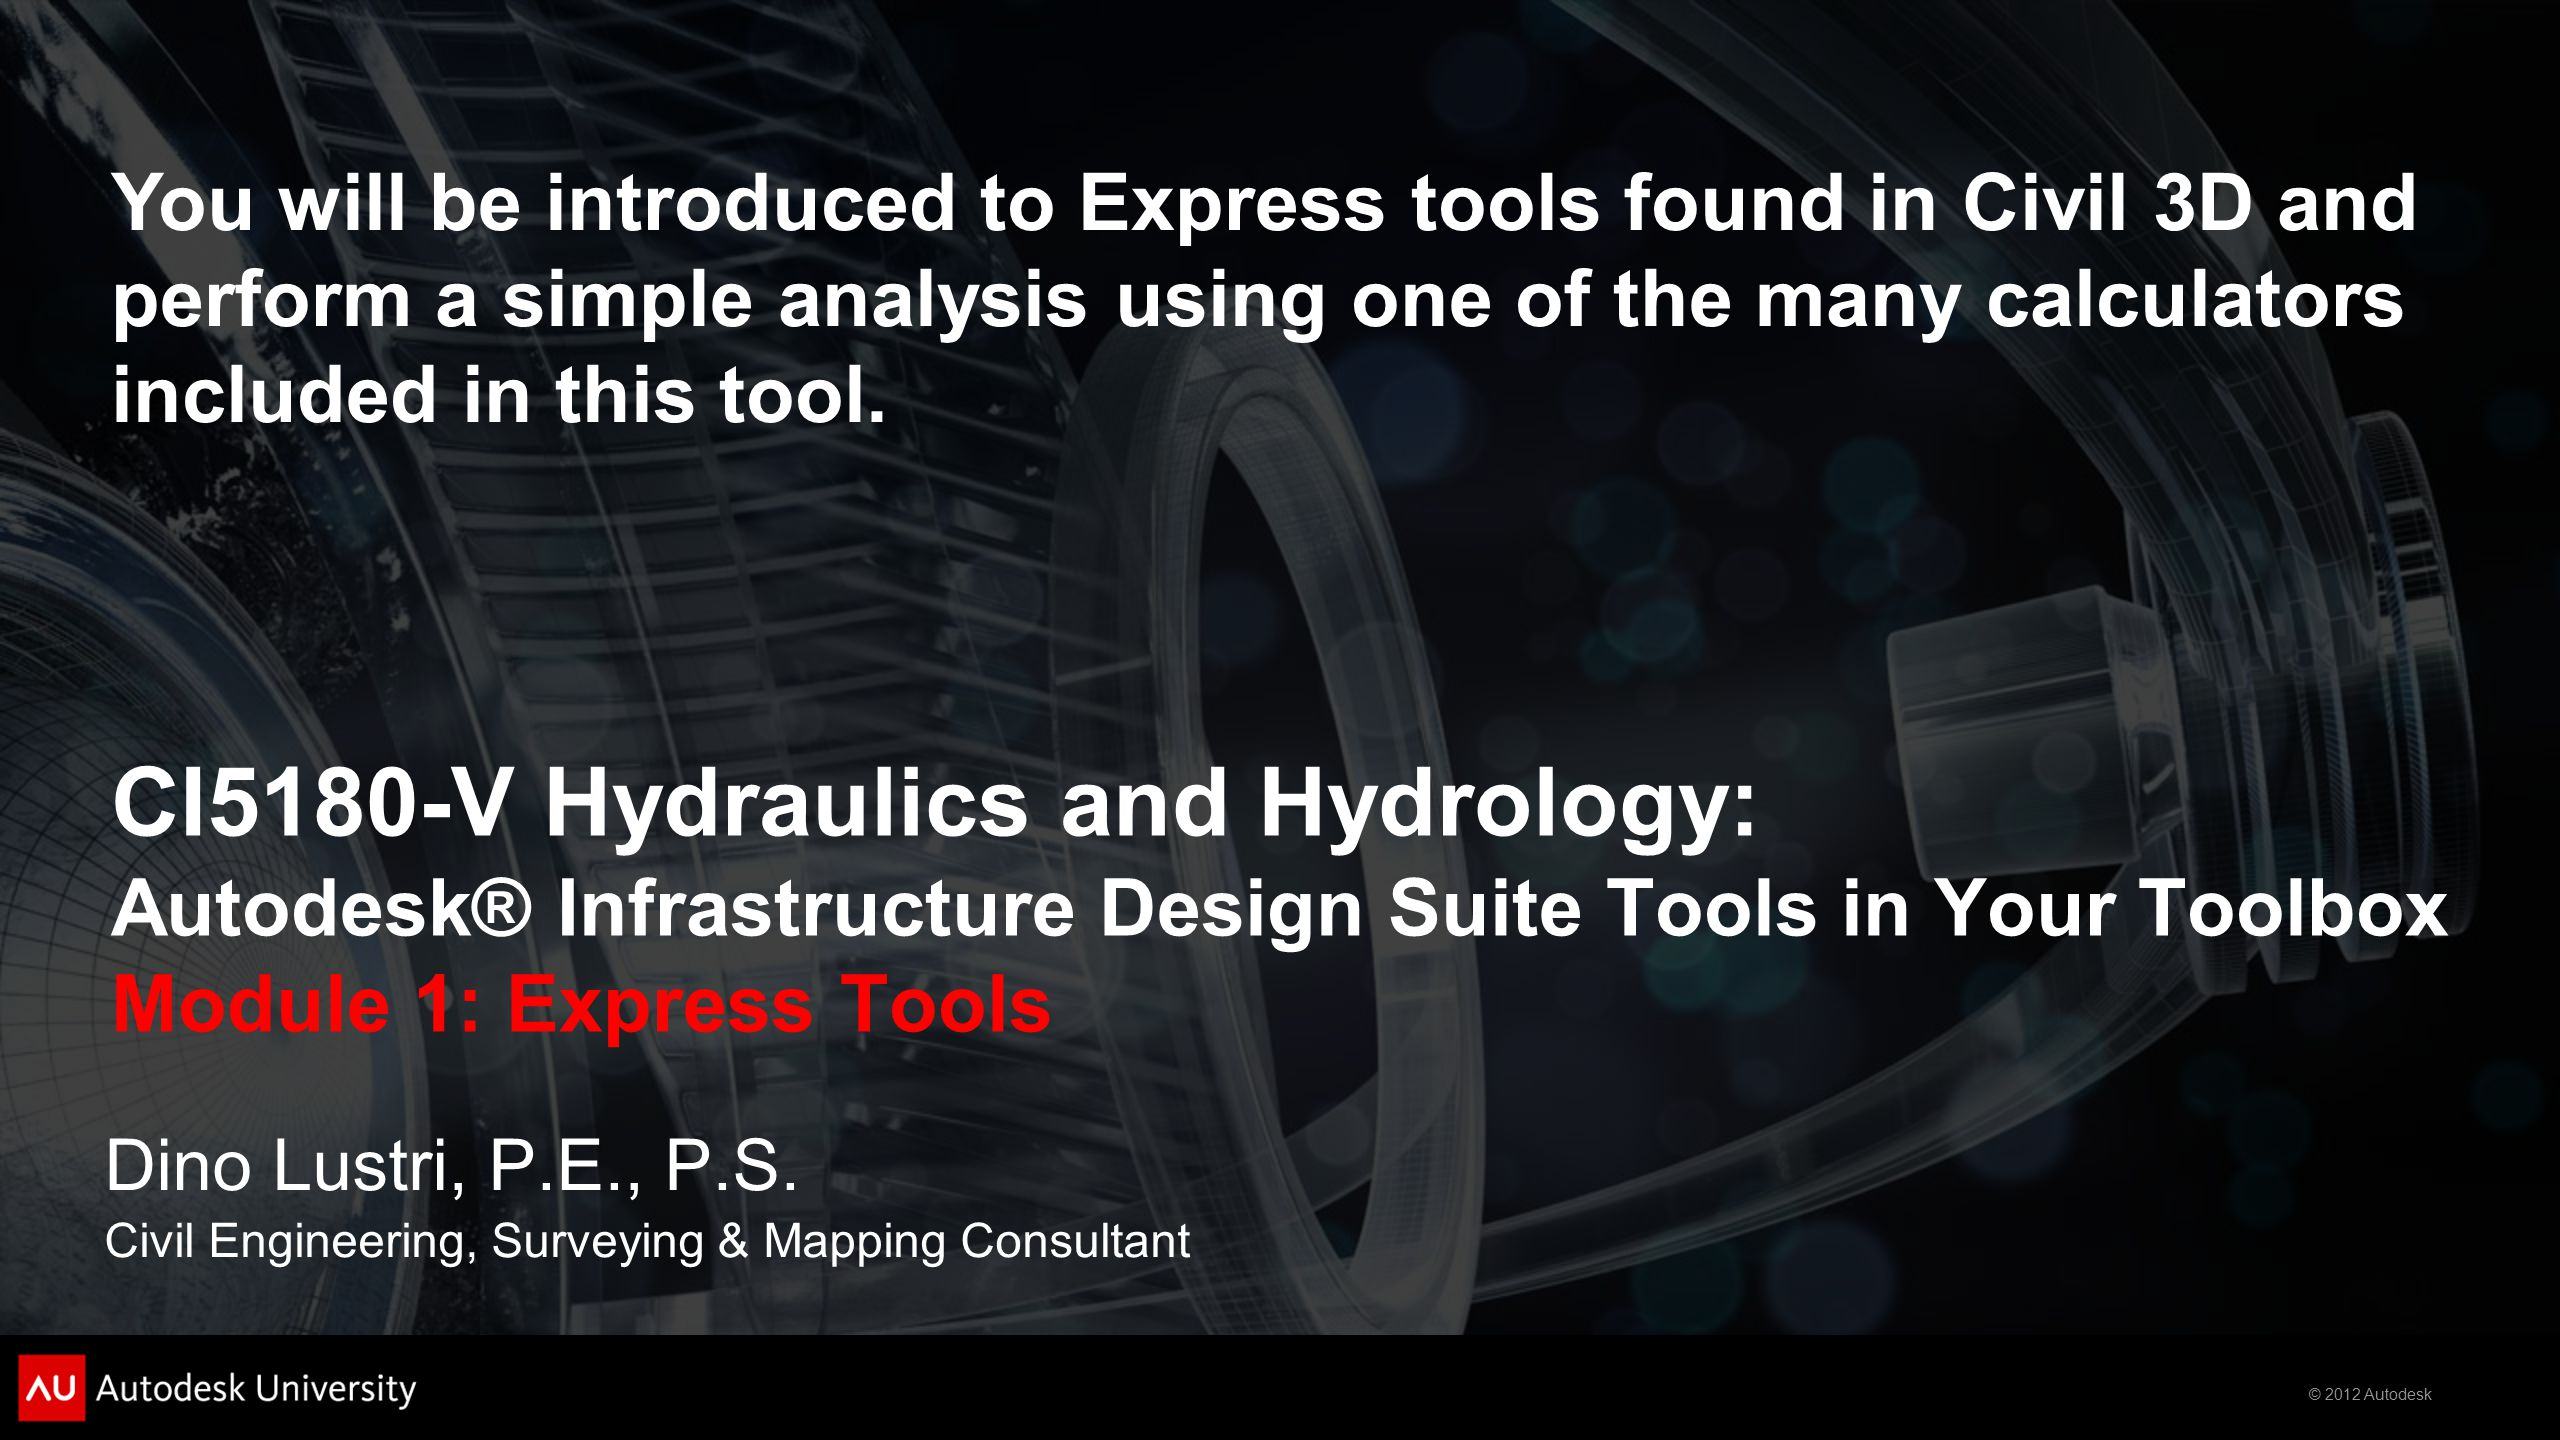 © 2012 Autodesk CI5180-V Hydraulics and Hydrology: Autodesk® Infrastructure Design Suite Tools in Your Toolbox Module 1: Express Tools Dino Lustri, P.E., P.S.